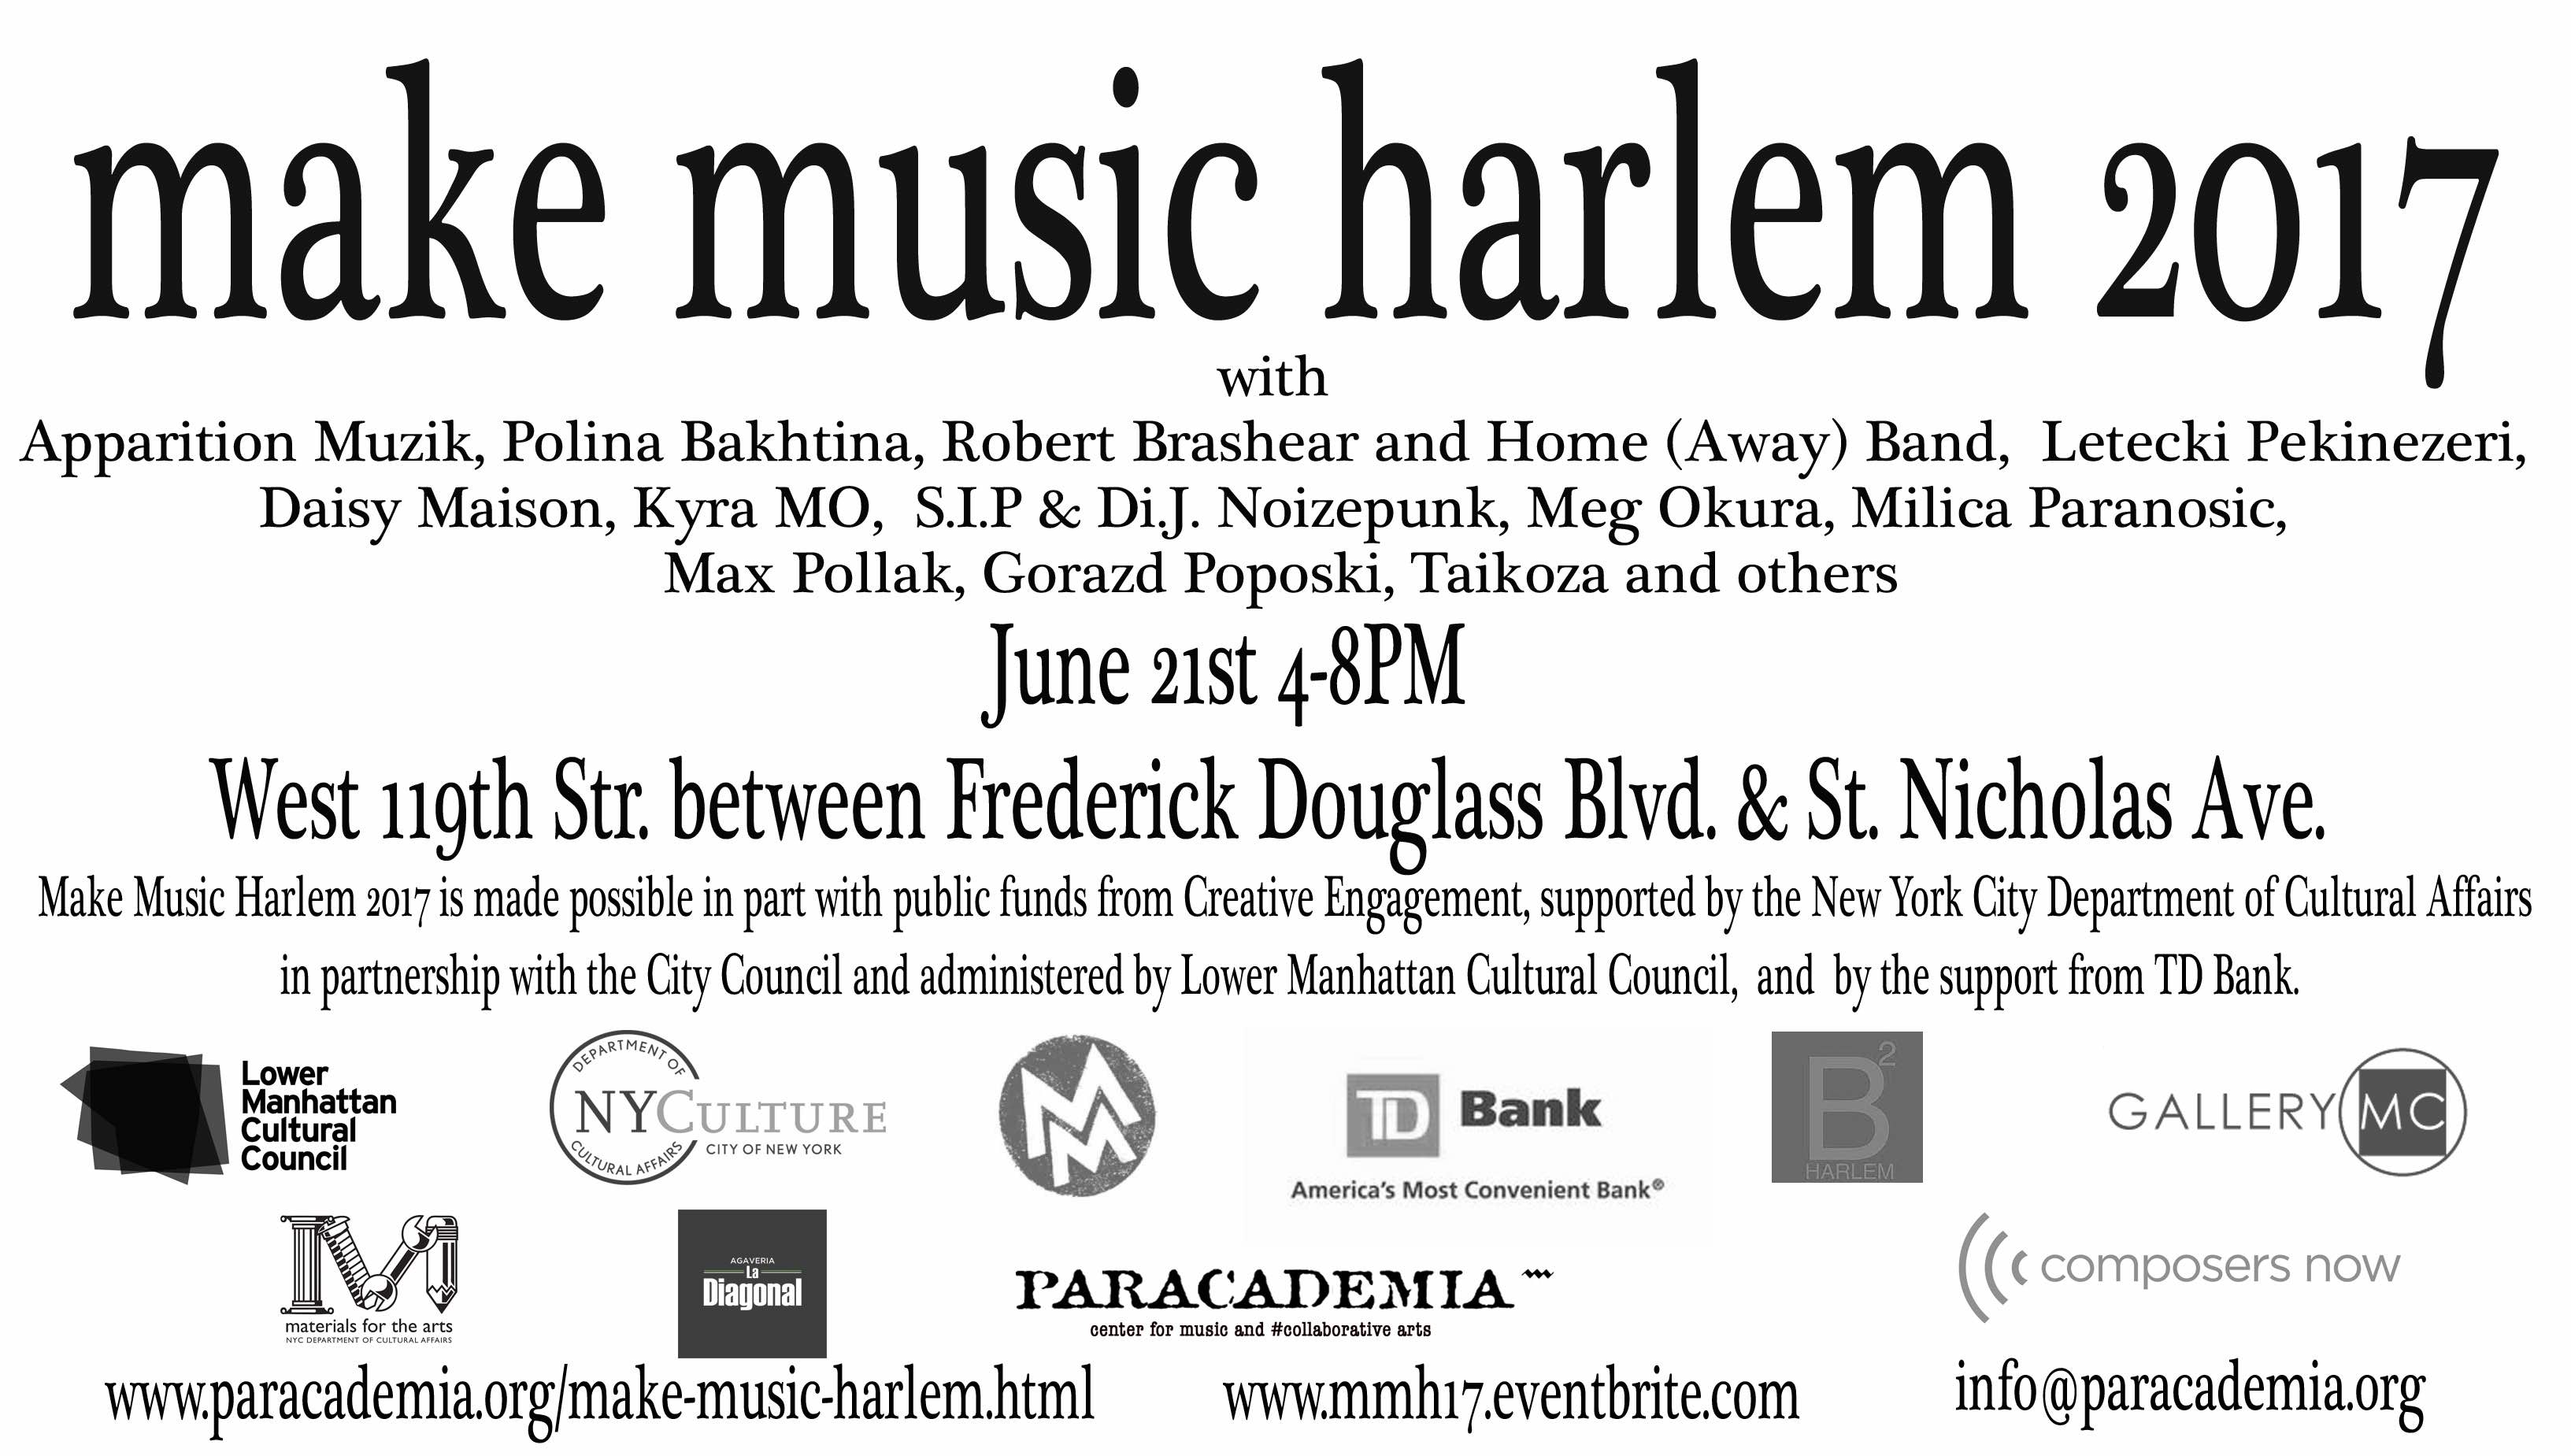 makemusicharlem2017_backjune